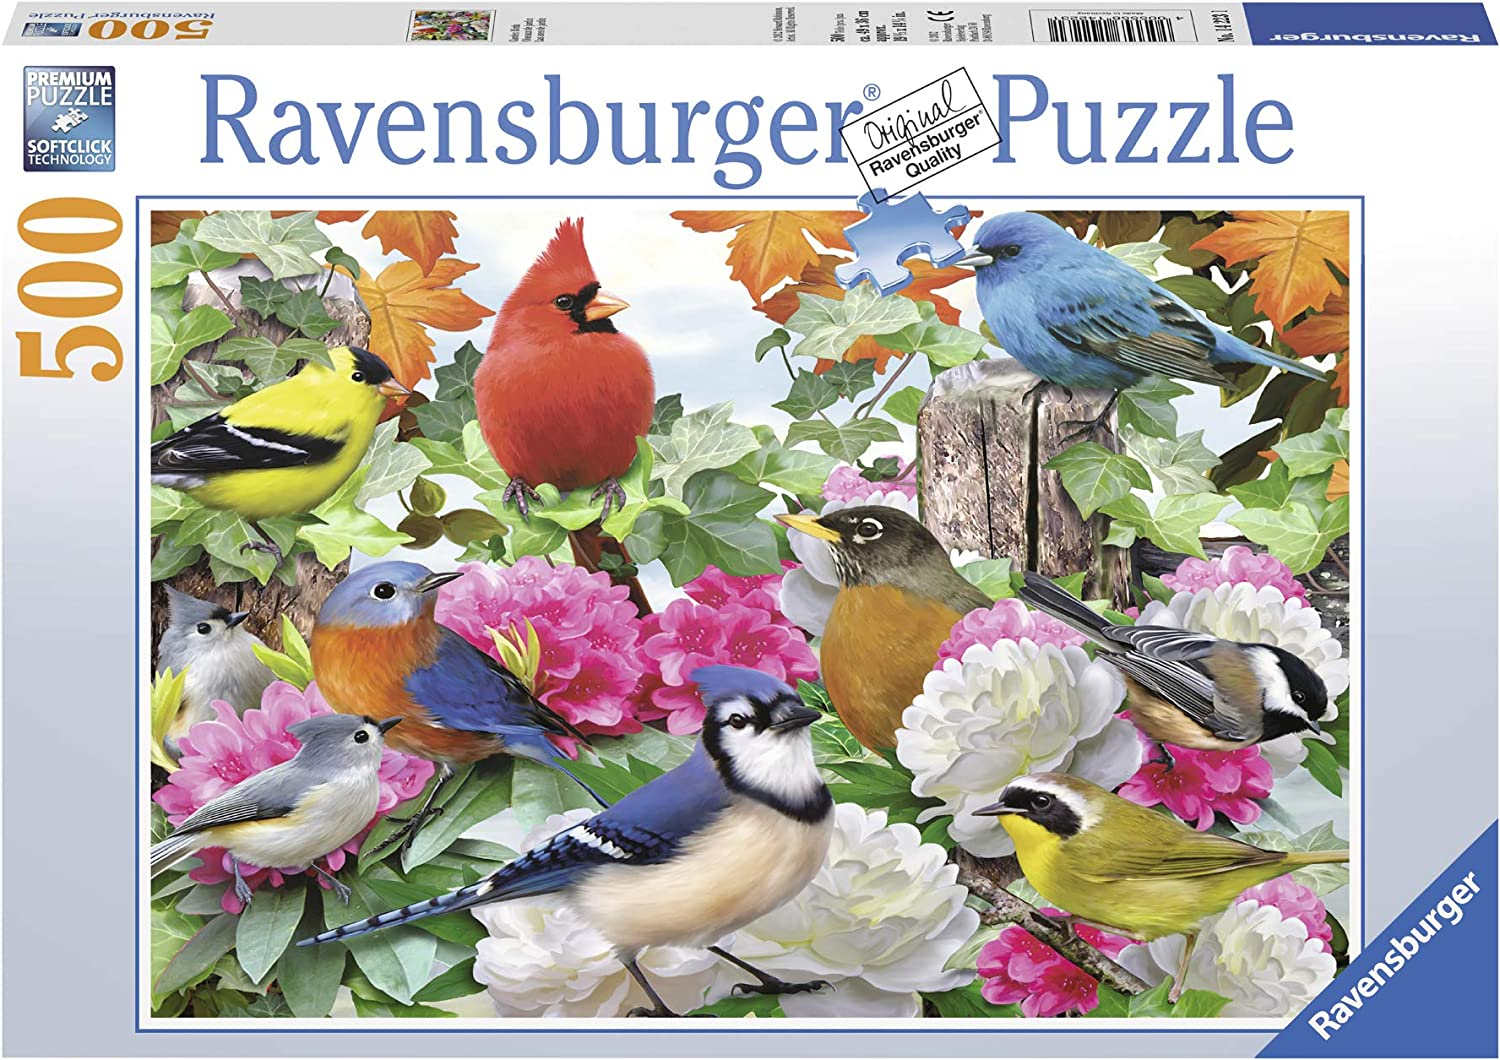 Three-Layer Paper Material,Every Piece Fits Together Perfectly Bird 500 Piece Jigsaw Puzzle for Adults Kids Teens